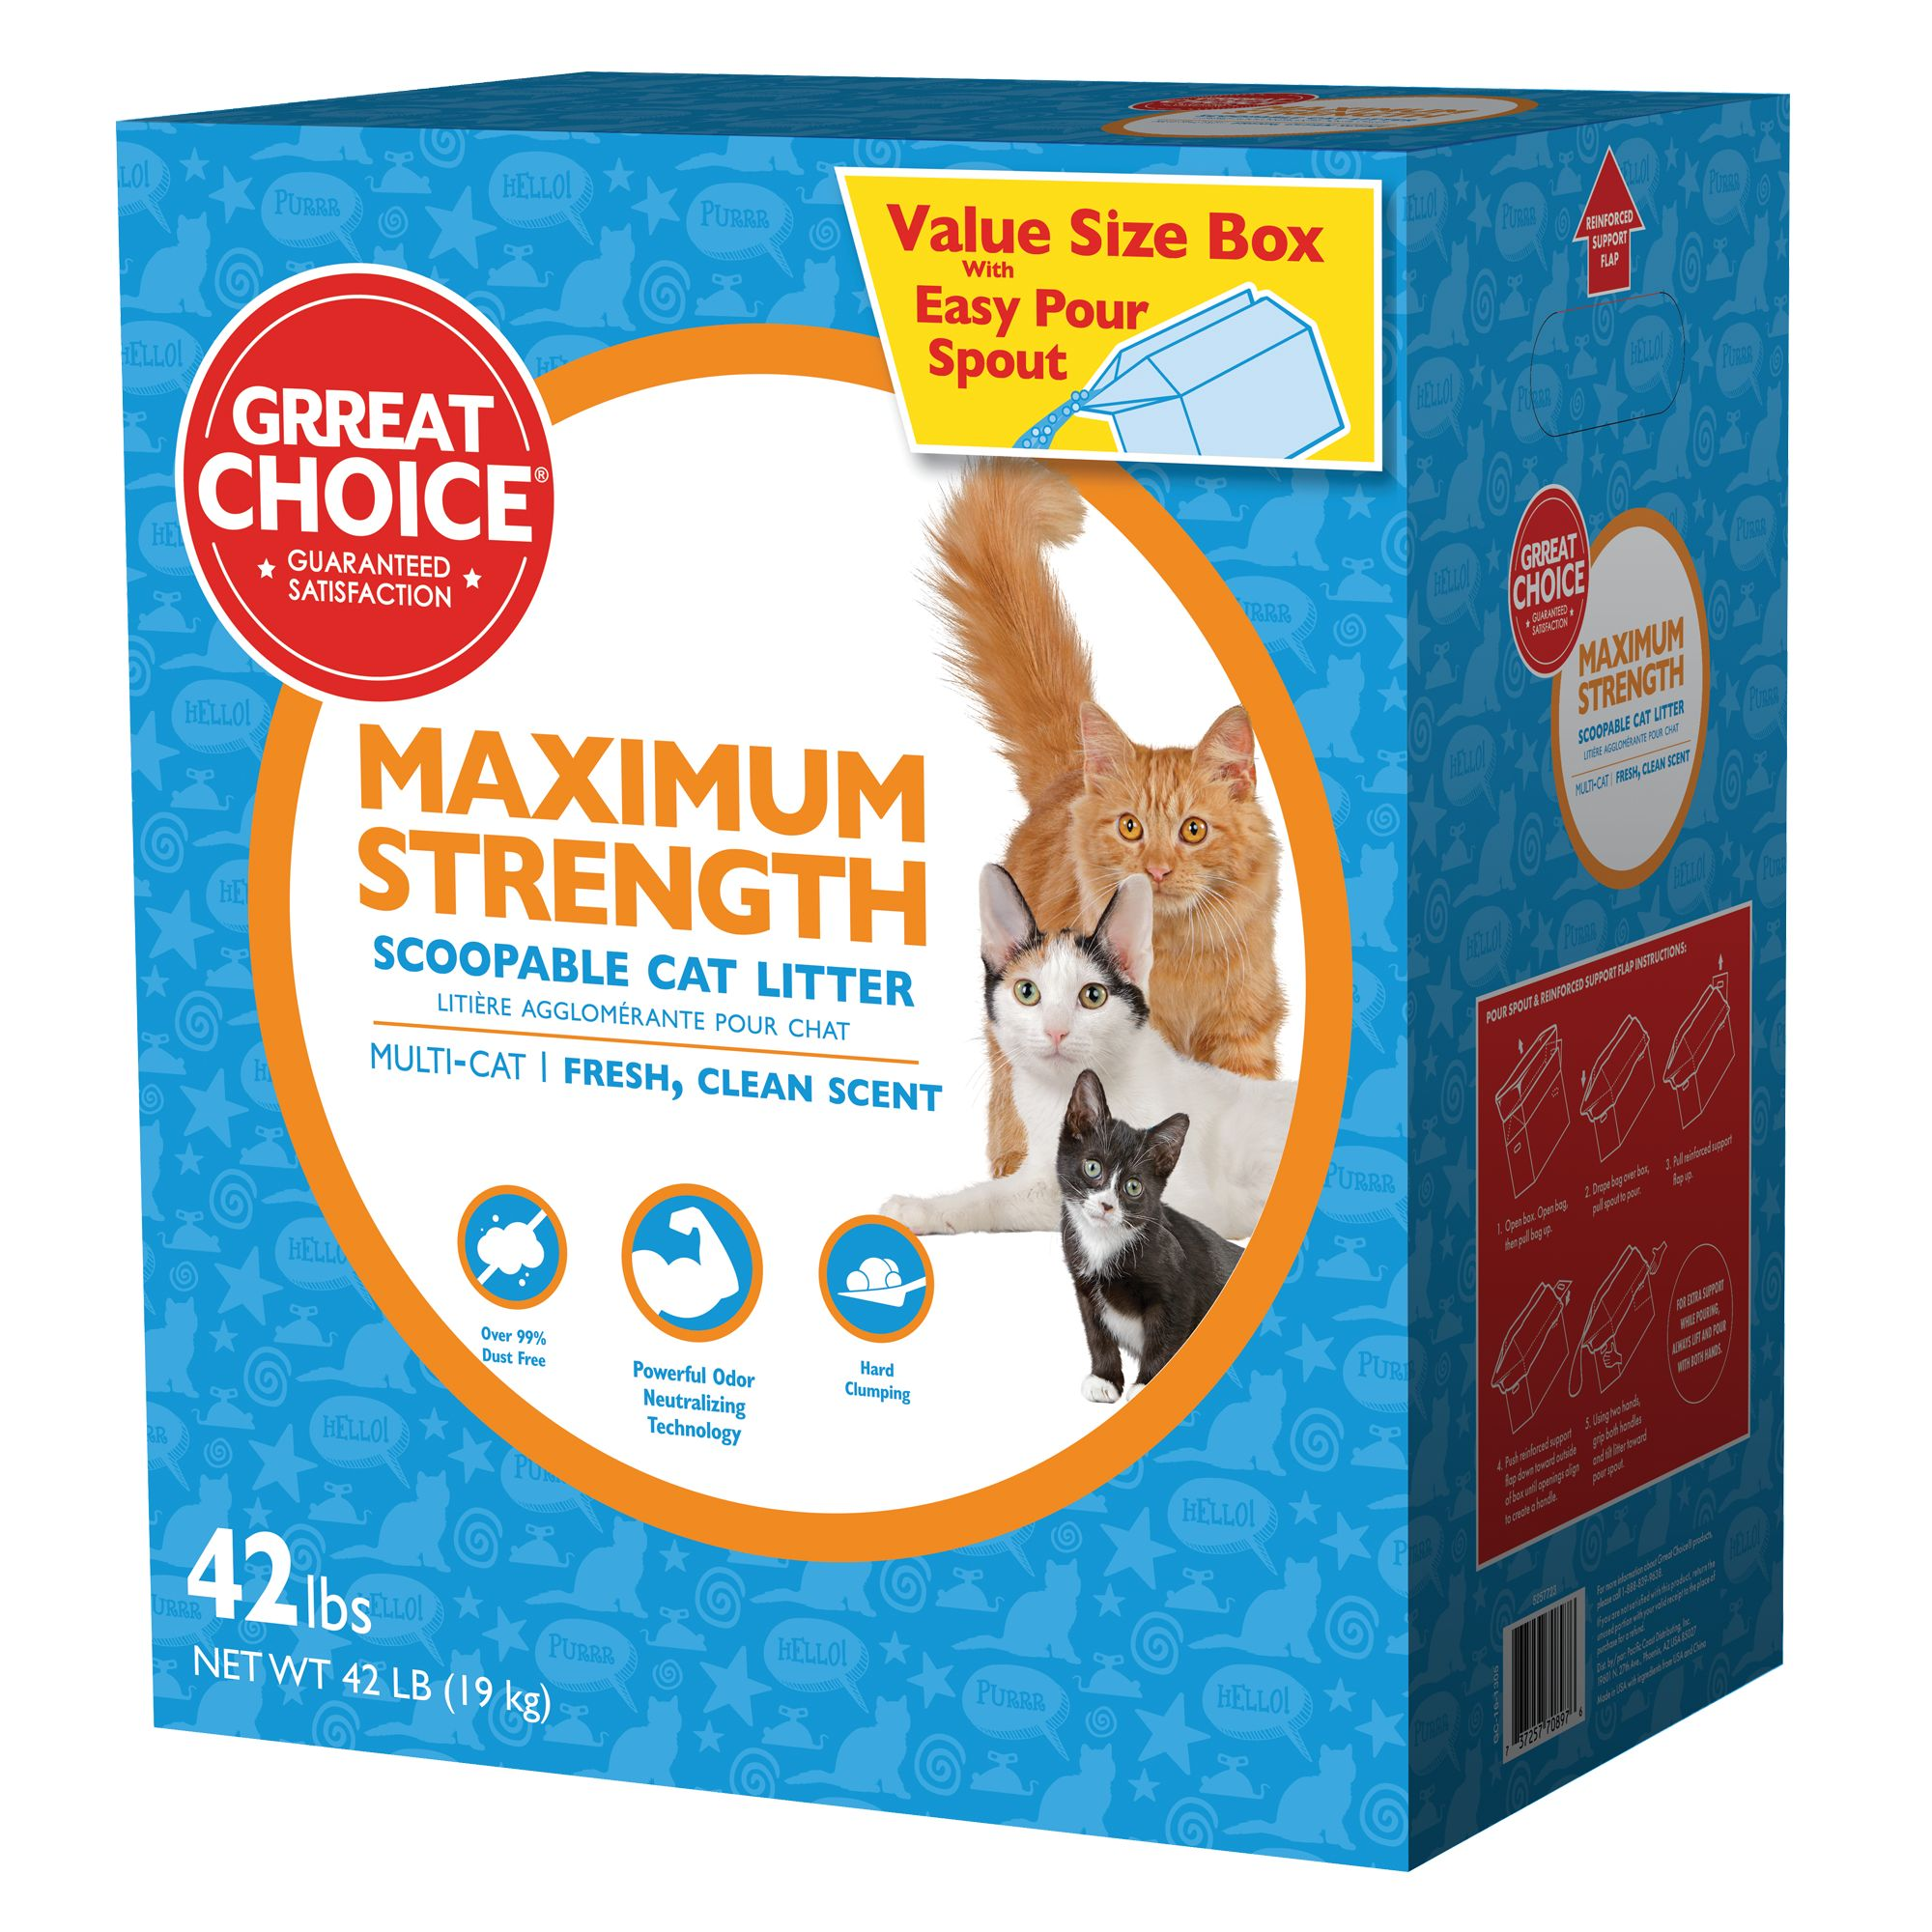 Grreat Choice® Maximun Strength Cat Litter - Scoopable, Muliti-Cat, Fresh Scent size: 42 Lb 5257723